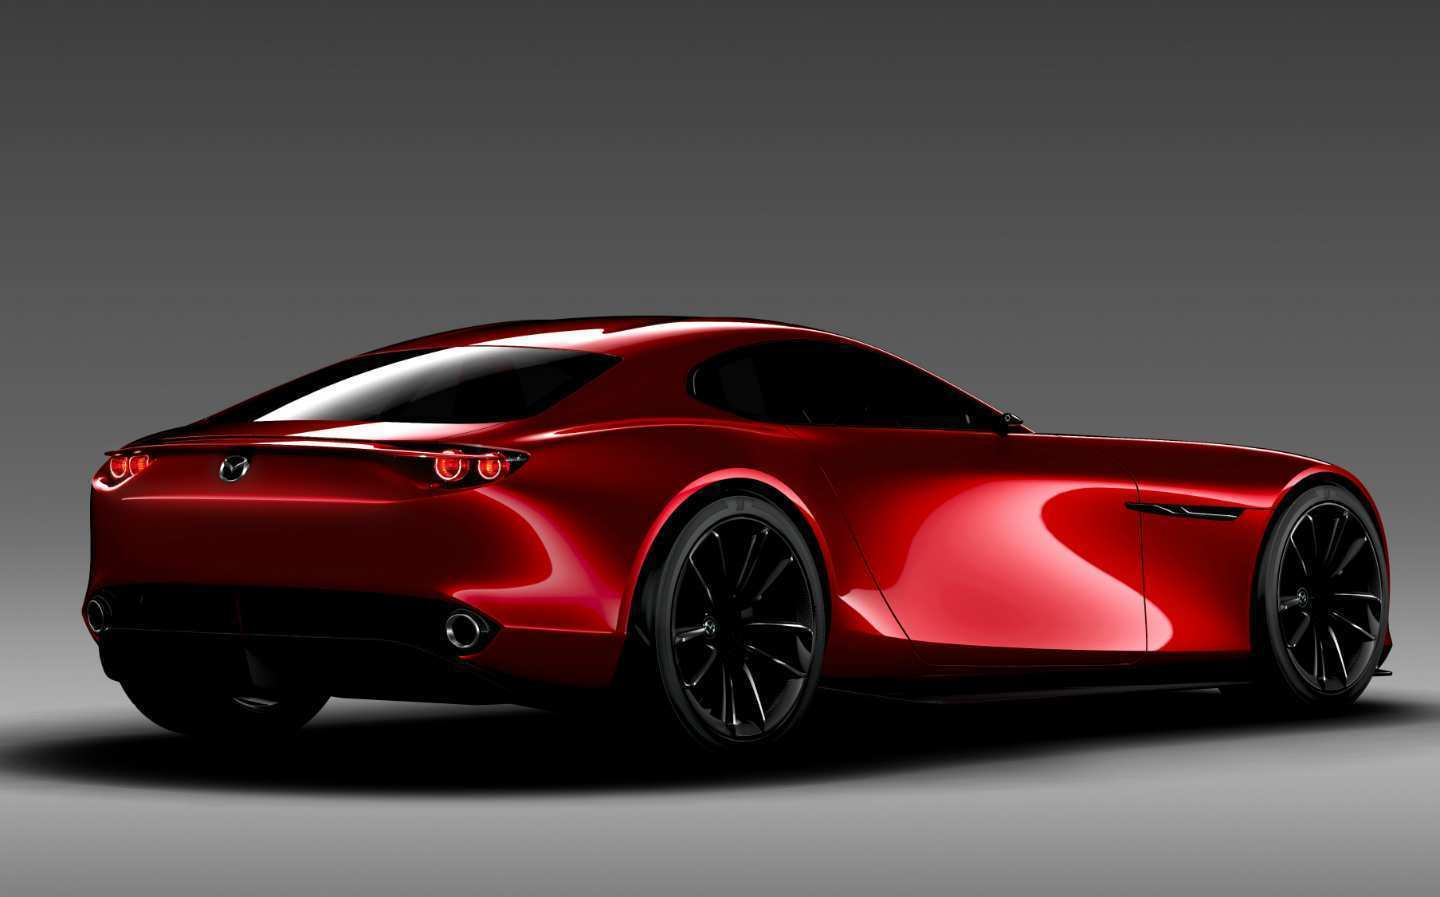 54 Best Review Mazda Rx7 2020 Release Date with Mazda Rx7 2020